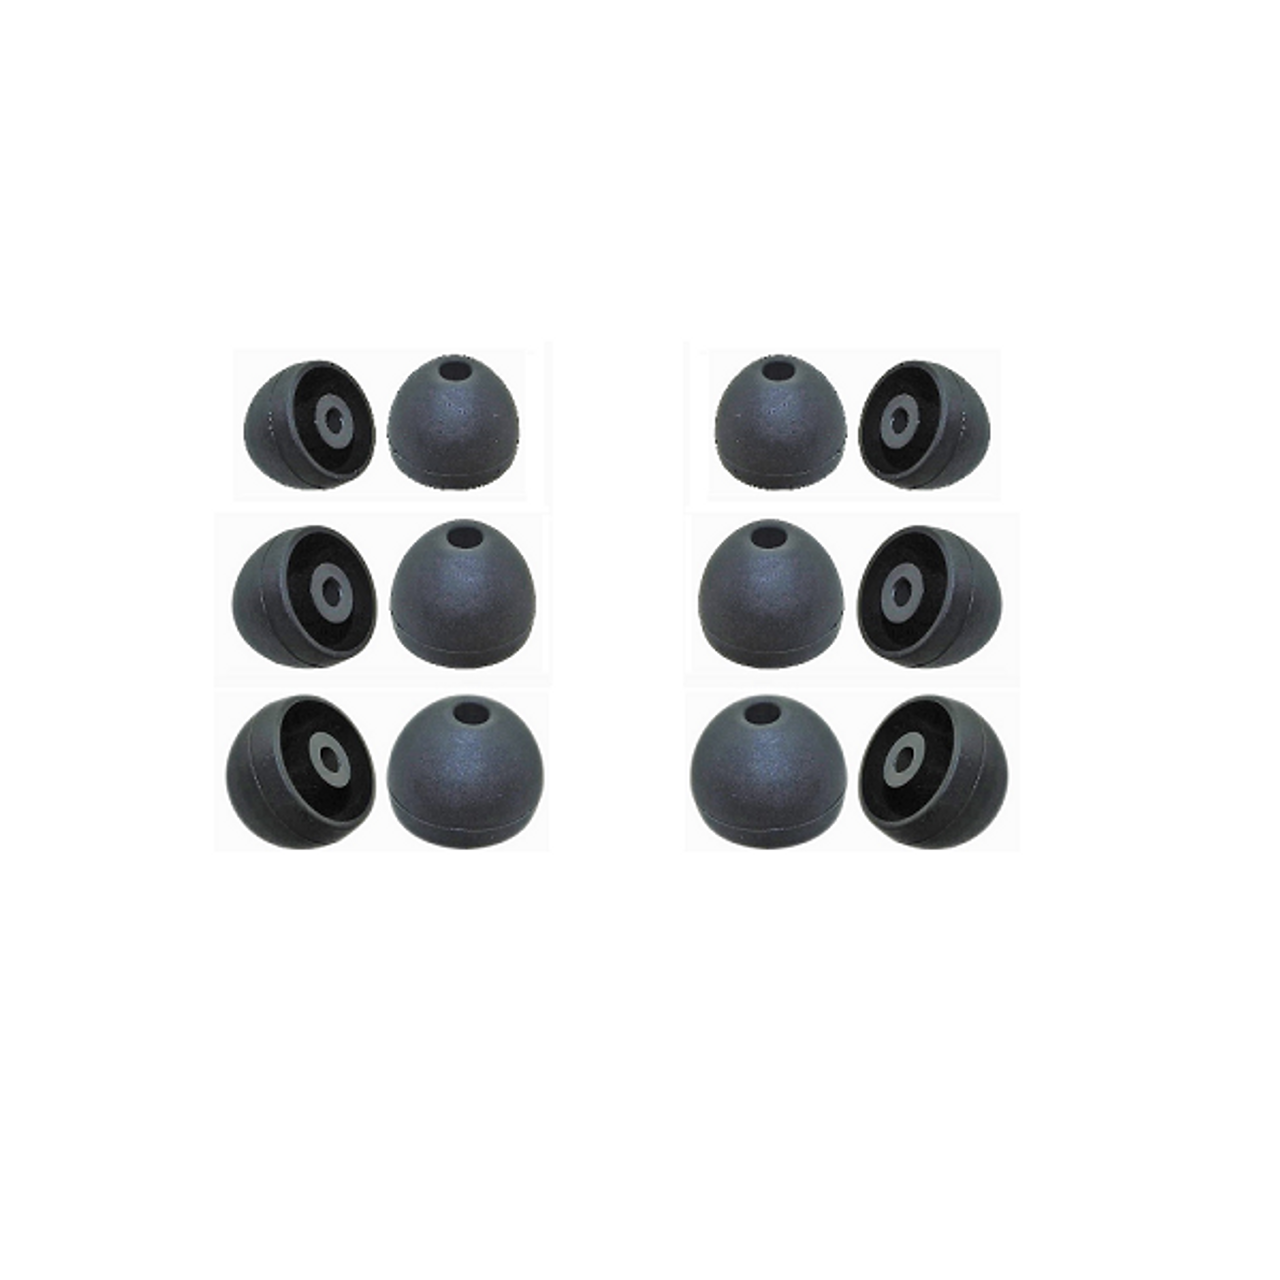 replacement earbud tips for 3M Peltor